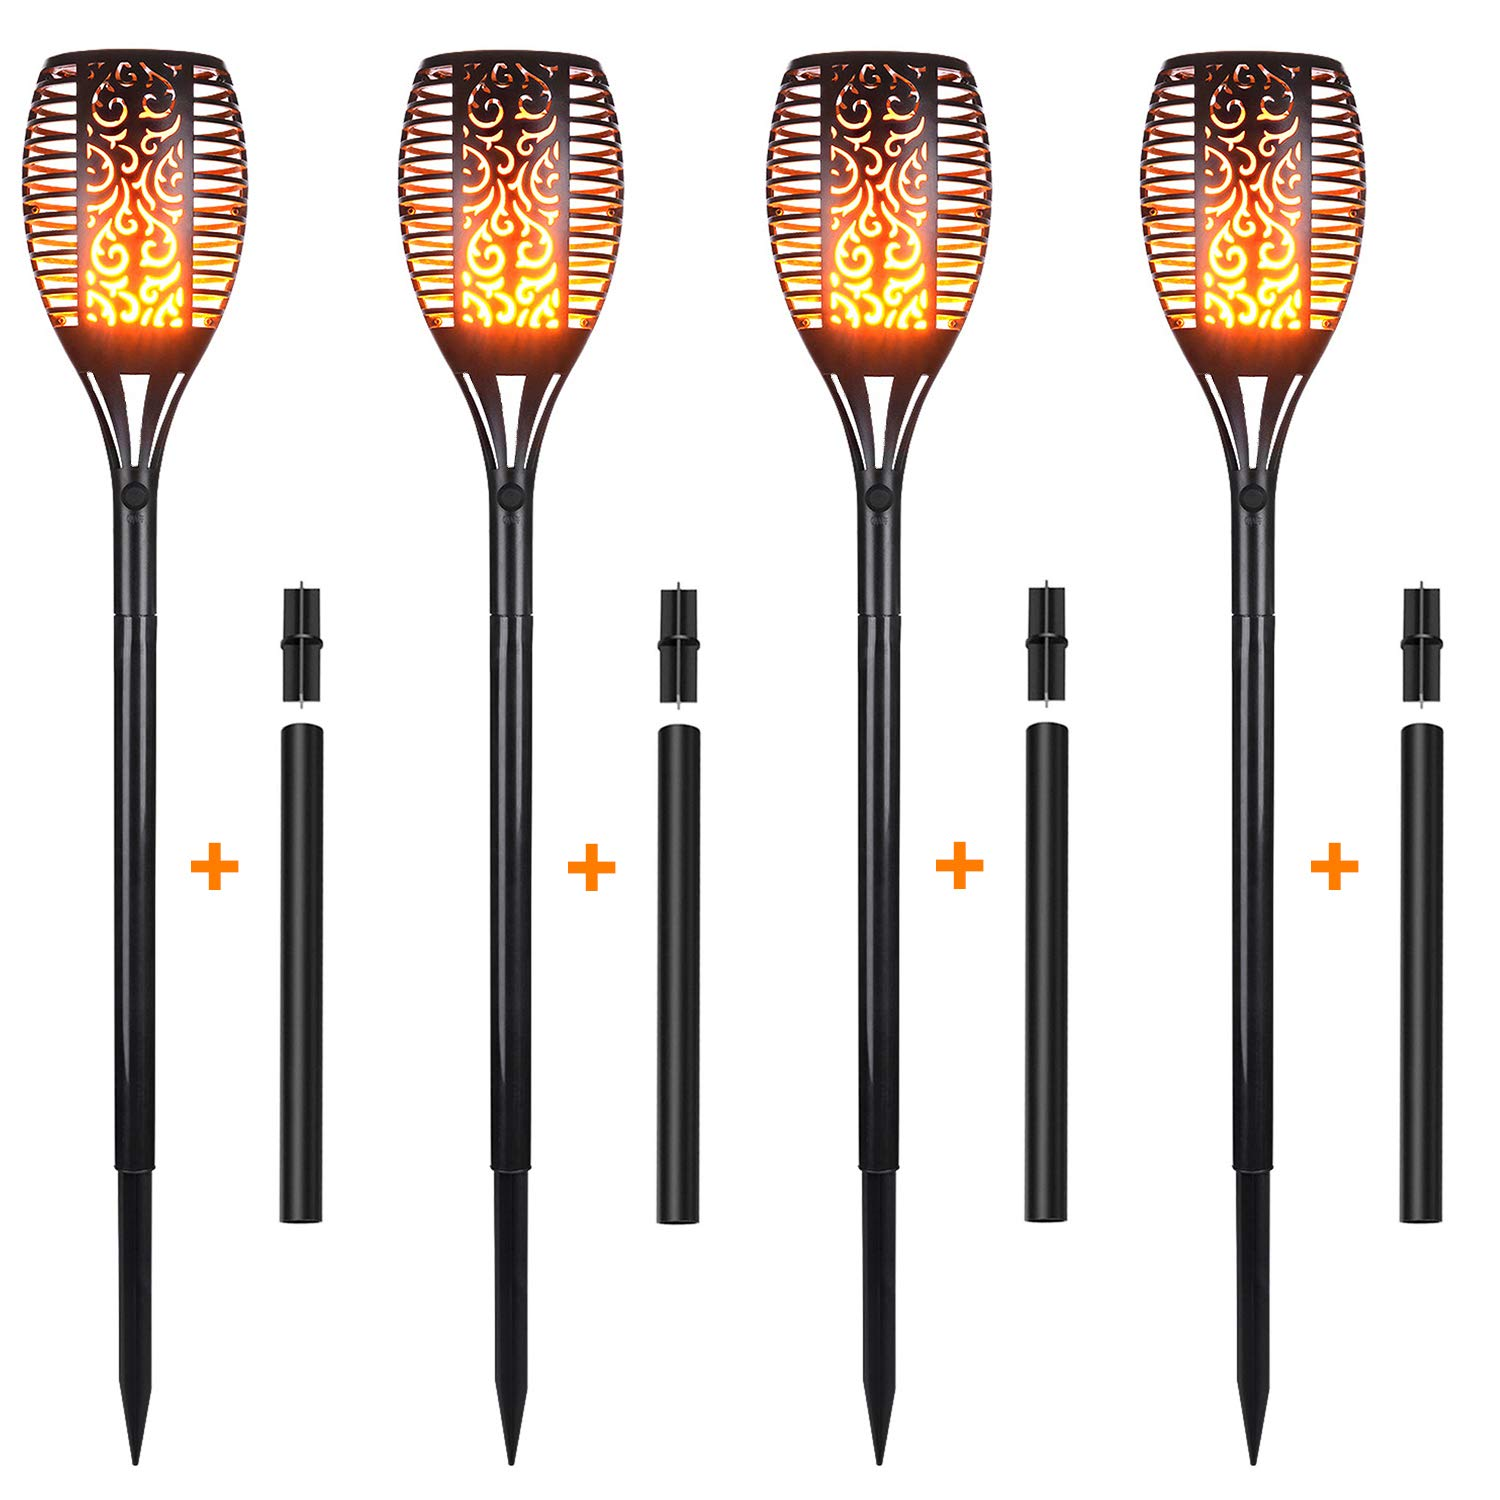 Xtozon Solar Torch Lights Upgraded, Dancing Flames Torch Solar Lamp, 96 LED Flame Effect Saving Lamp, Waterproof Outdoor Pathway Decoration Solar Security Light Auto On/Off from Dusk to Dawn - 4 pack